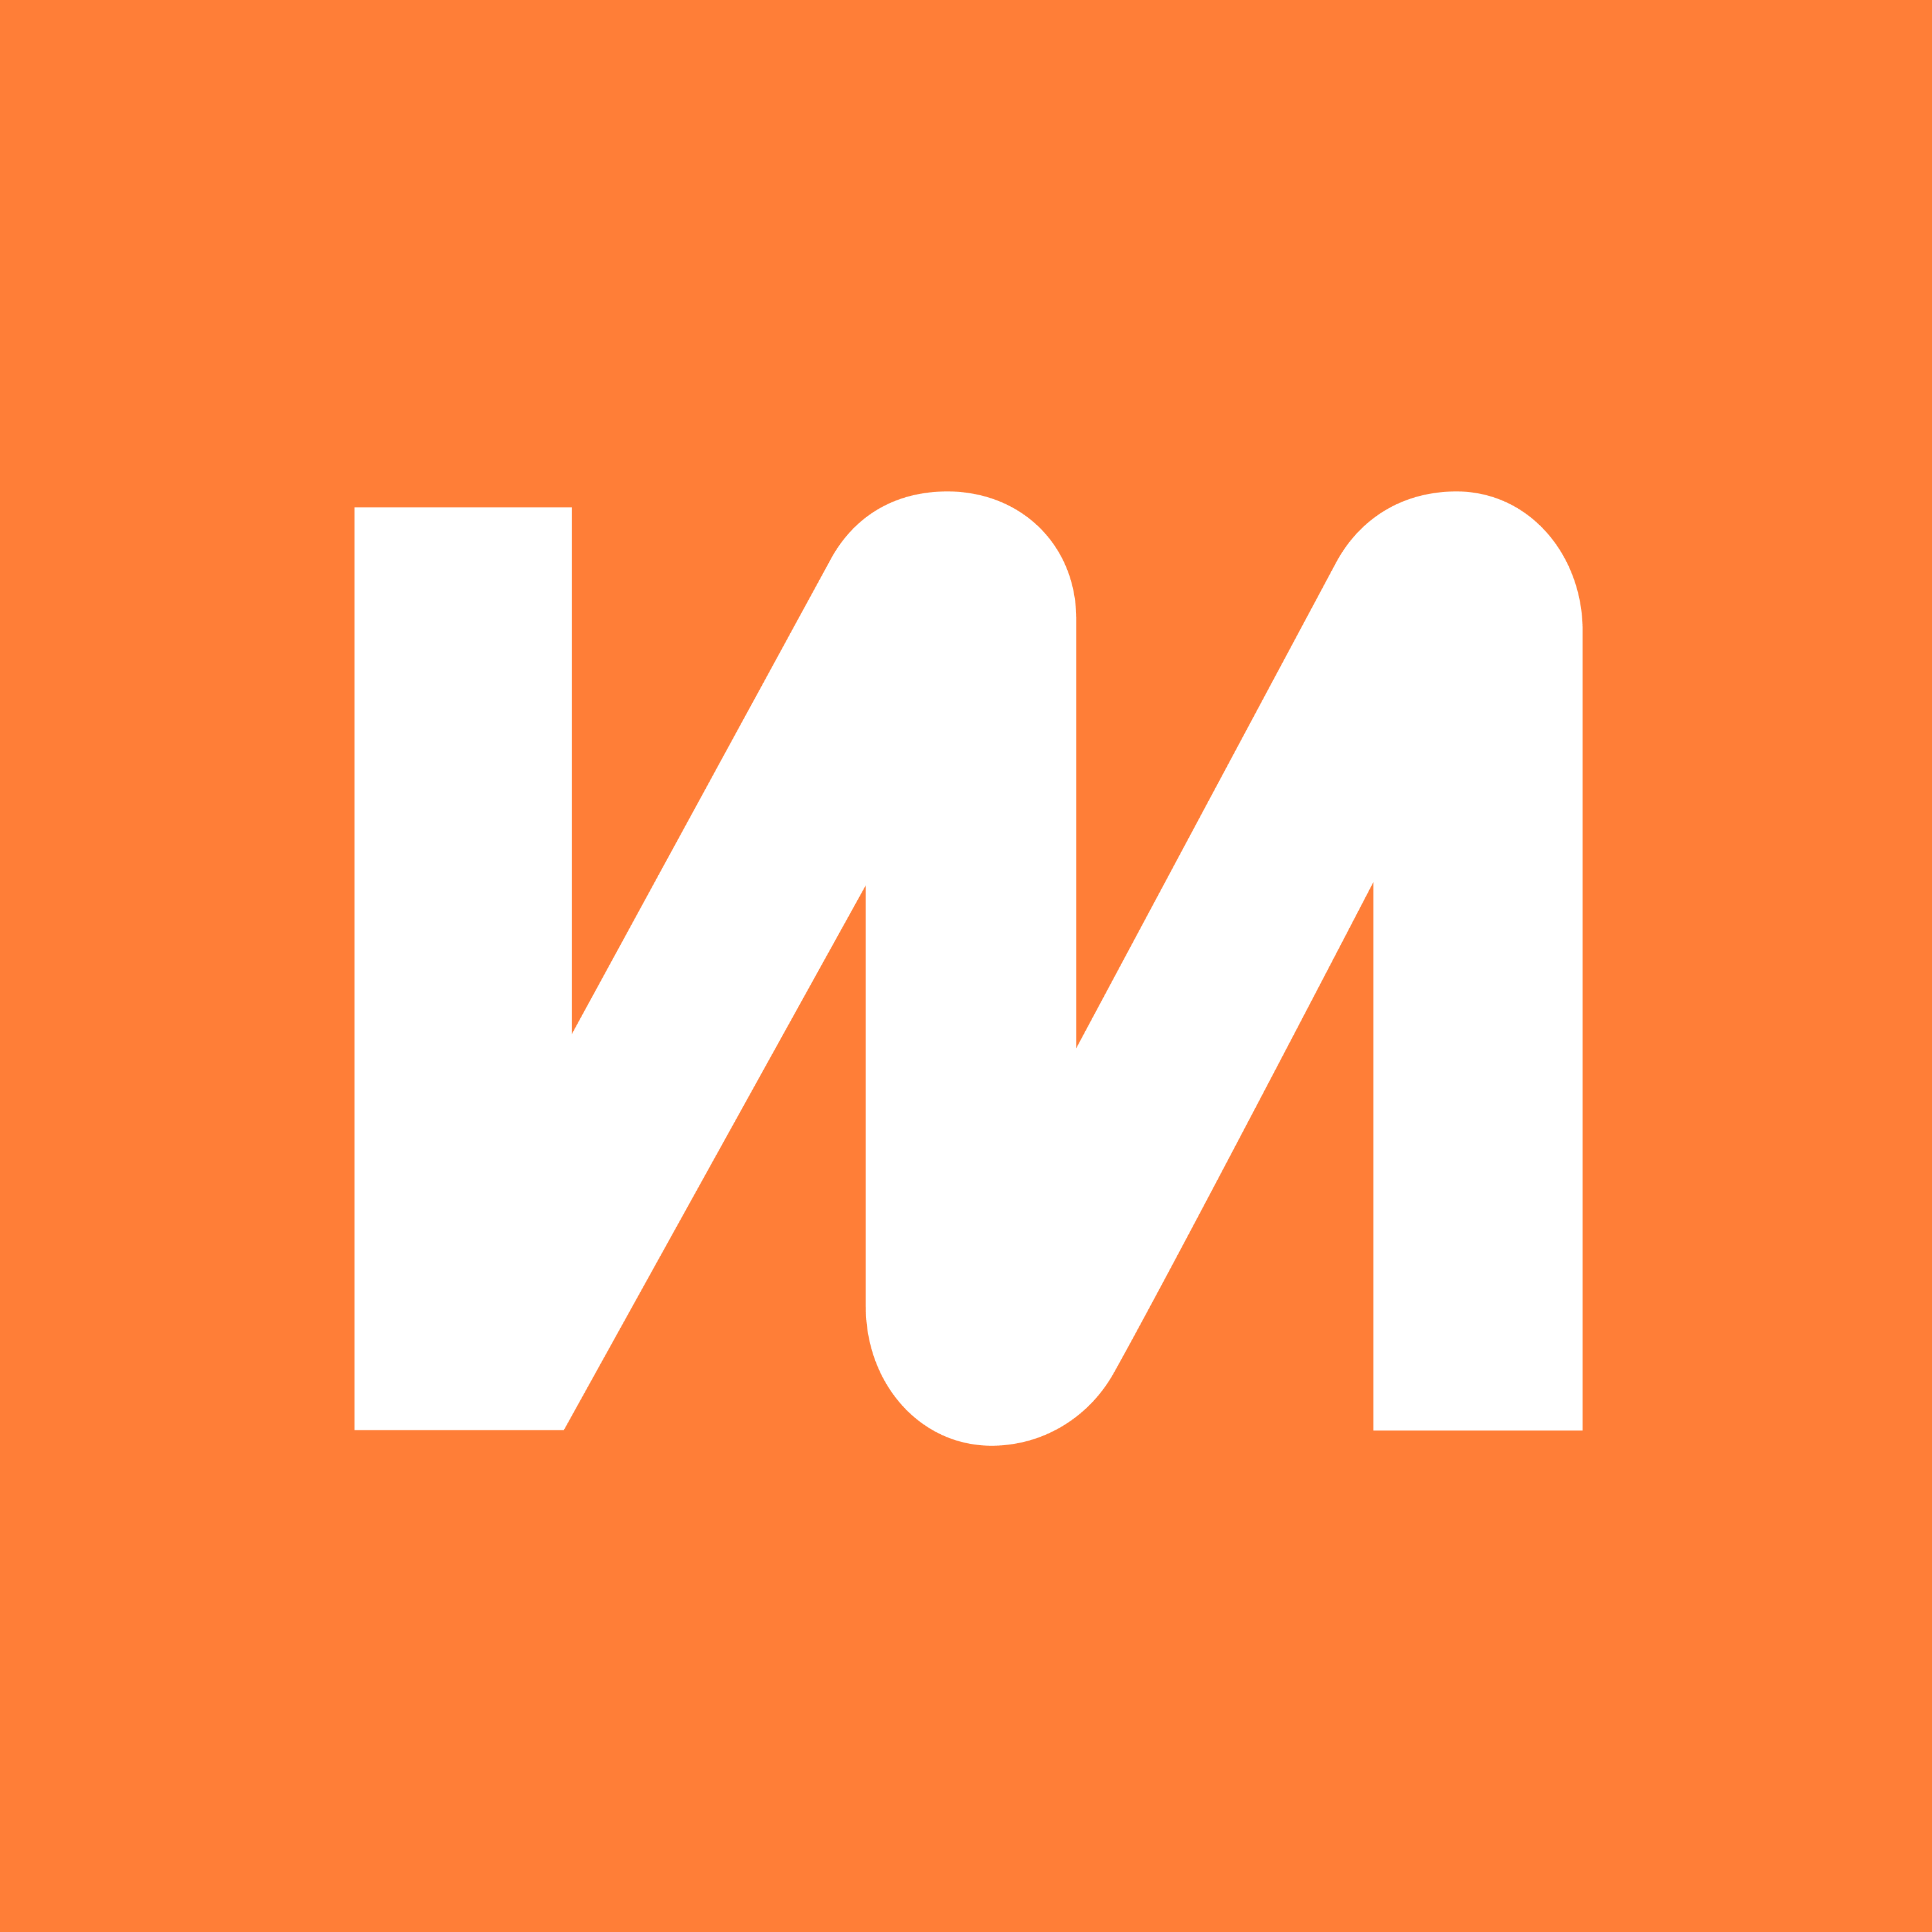 EXMO Coin (EXM) Price to USD - Live Value Today | Coinranking